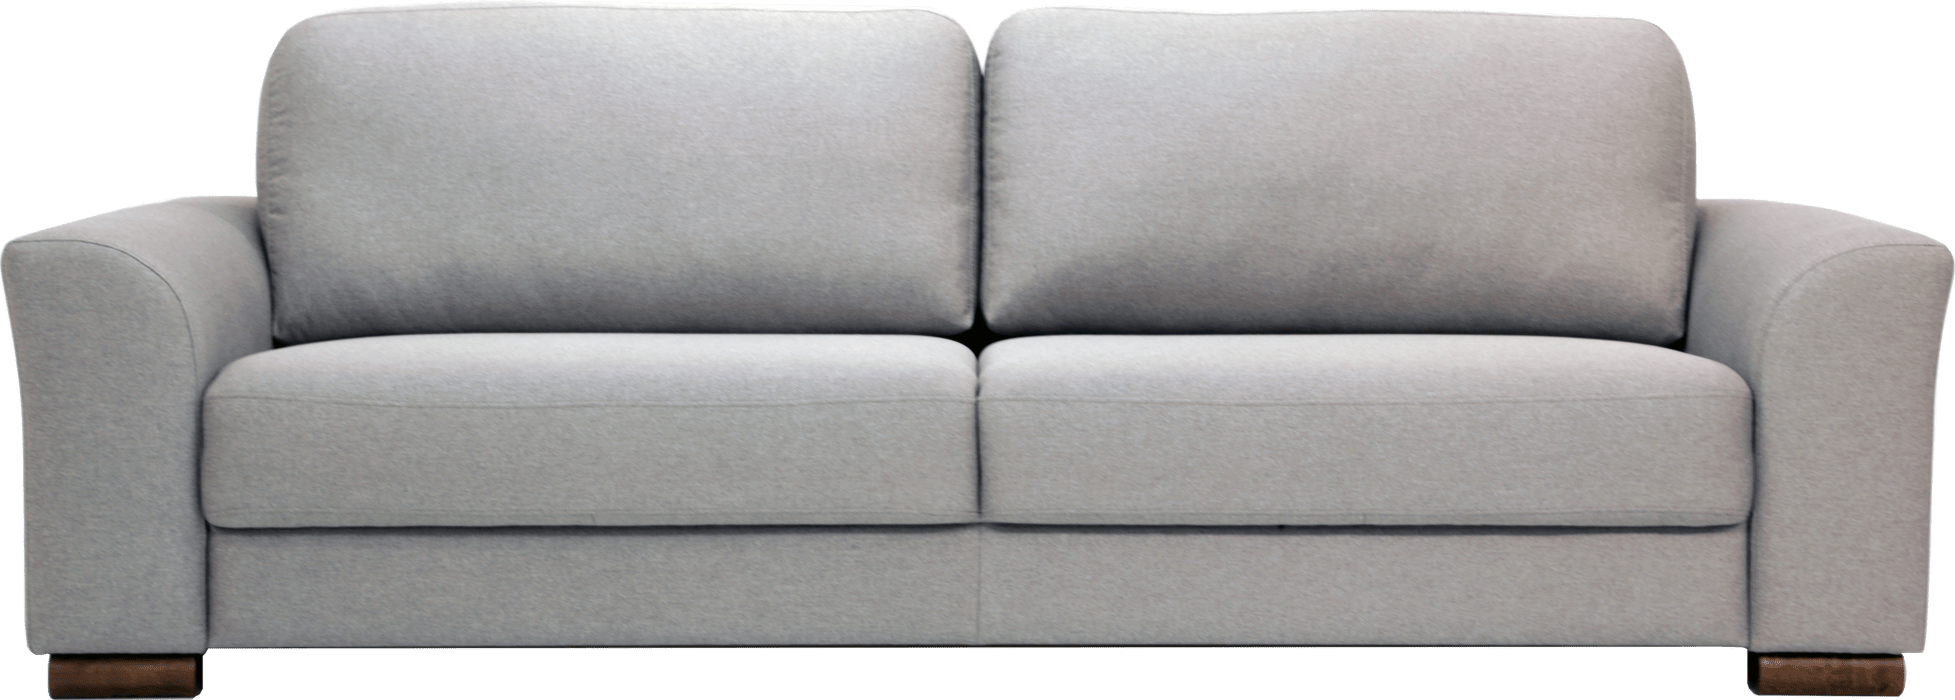 Sofa King Queen Malibu King Size Luonto Furniture